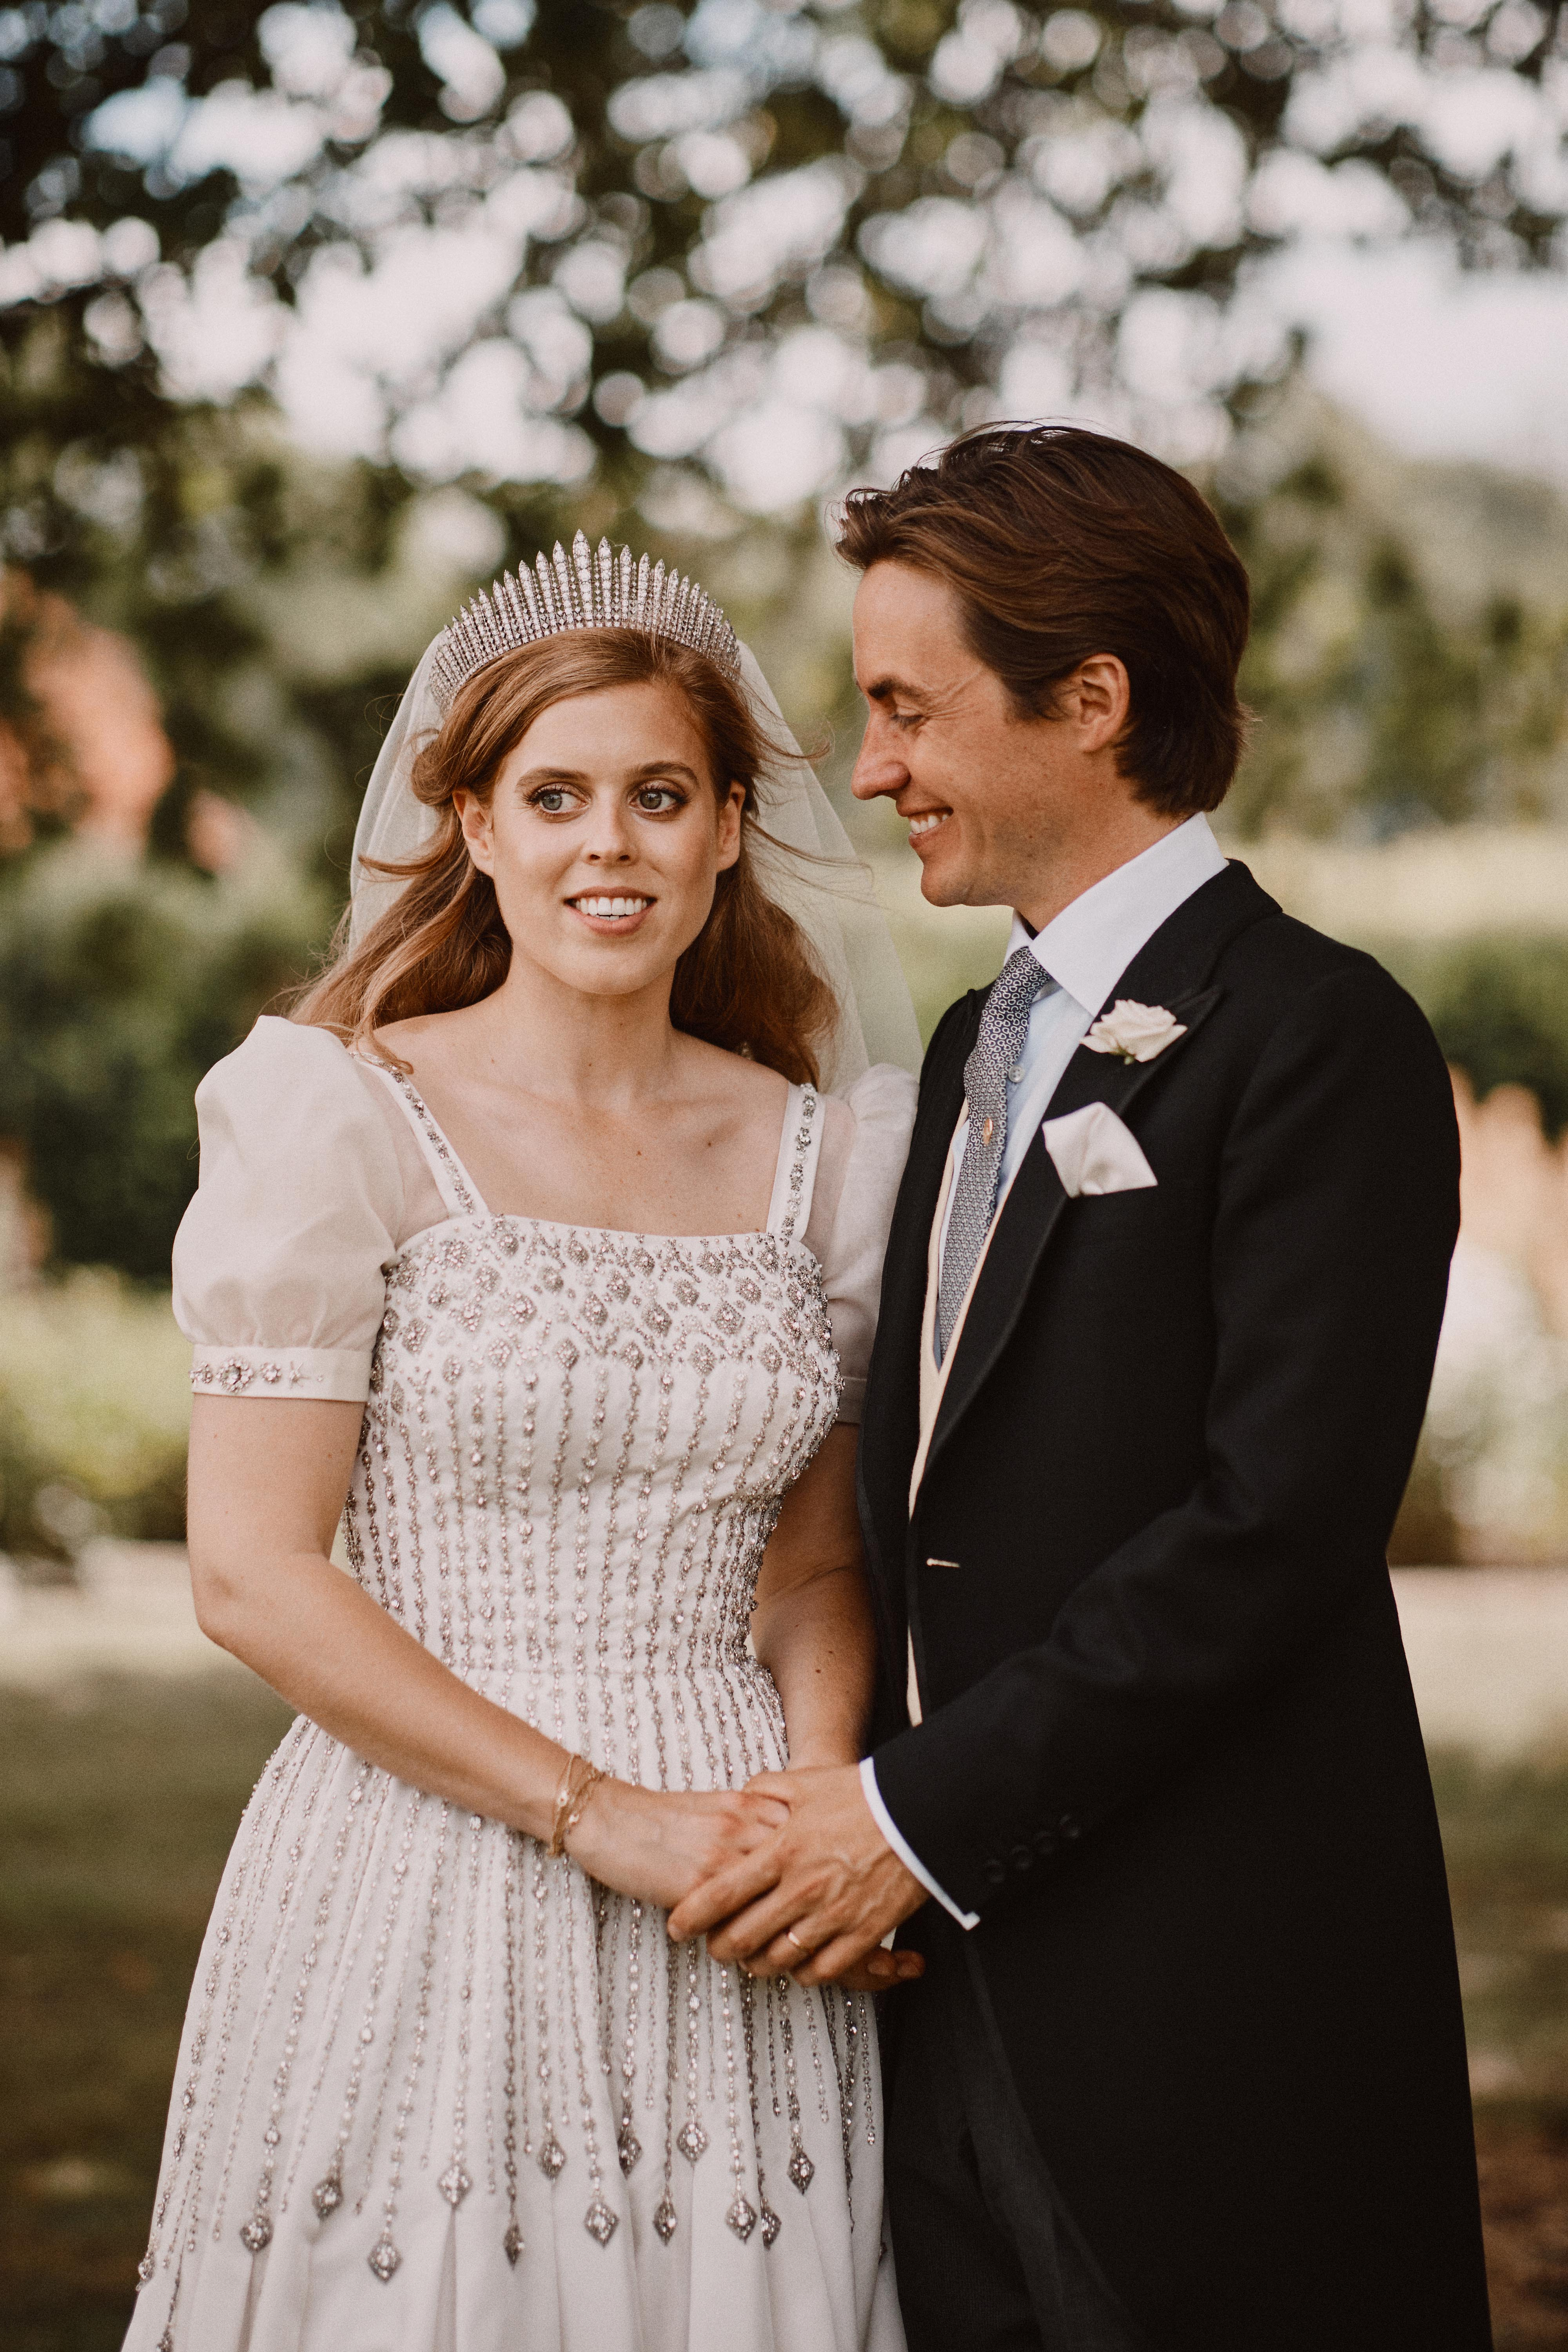 Image Source: Getty Images/Princess Beatrice and Edoardo Mapelli Mozzi are photographed after their wedding in the grounds of Royal Lodge on July 18, 2020